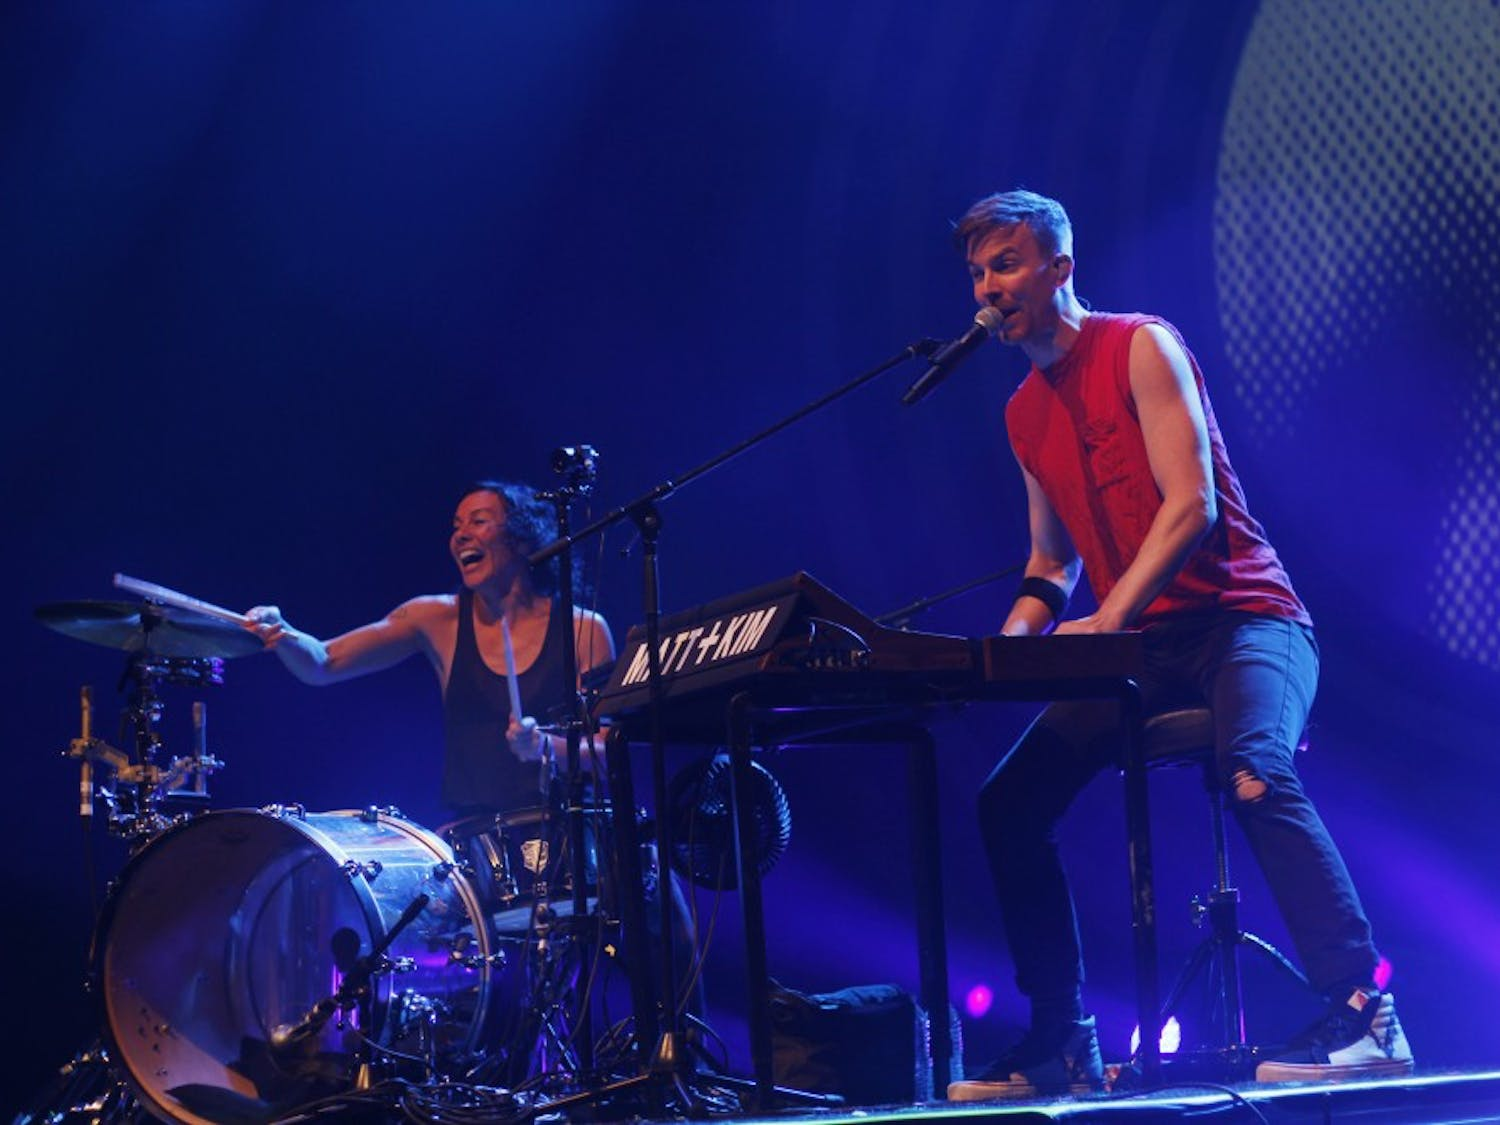 """Pop-duo Matt and Kim brought an energetic performance to the Center for the Arts on Saturday, despite low attendance. Closers American Authors brought a calmness to the evening and mixed in new tracks an popular cuts like """"Best Days of My Life."""""""